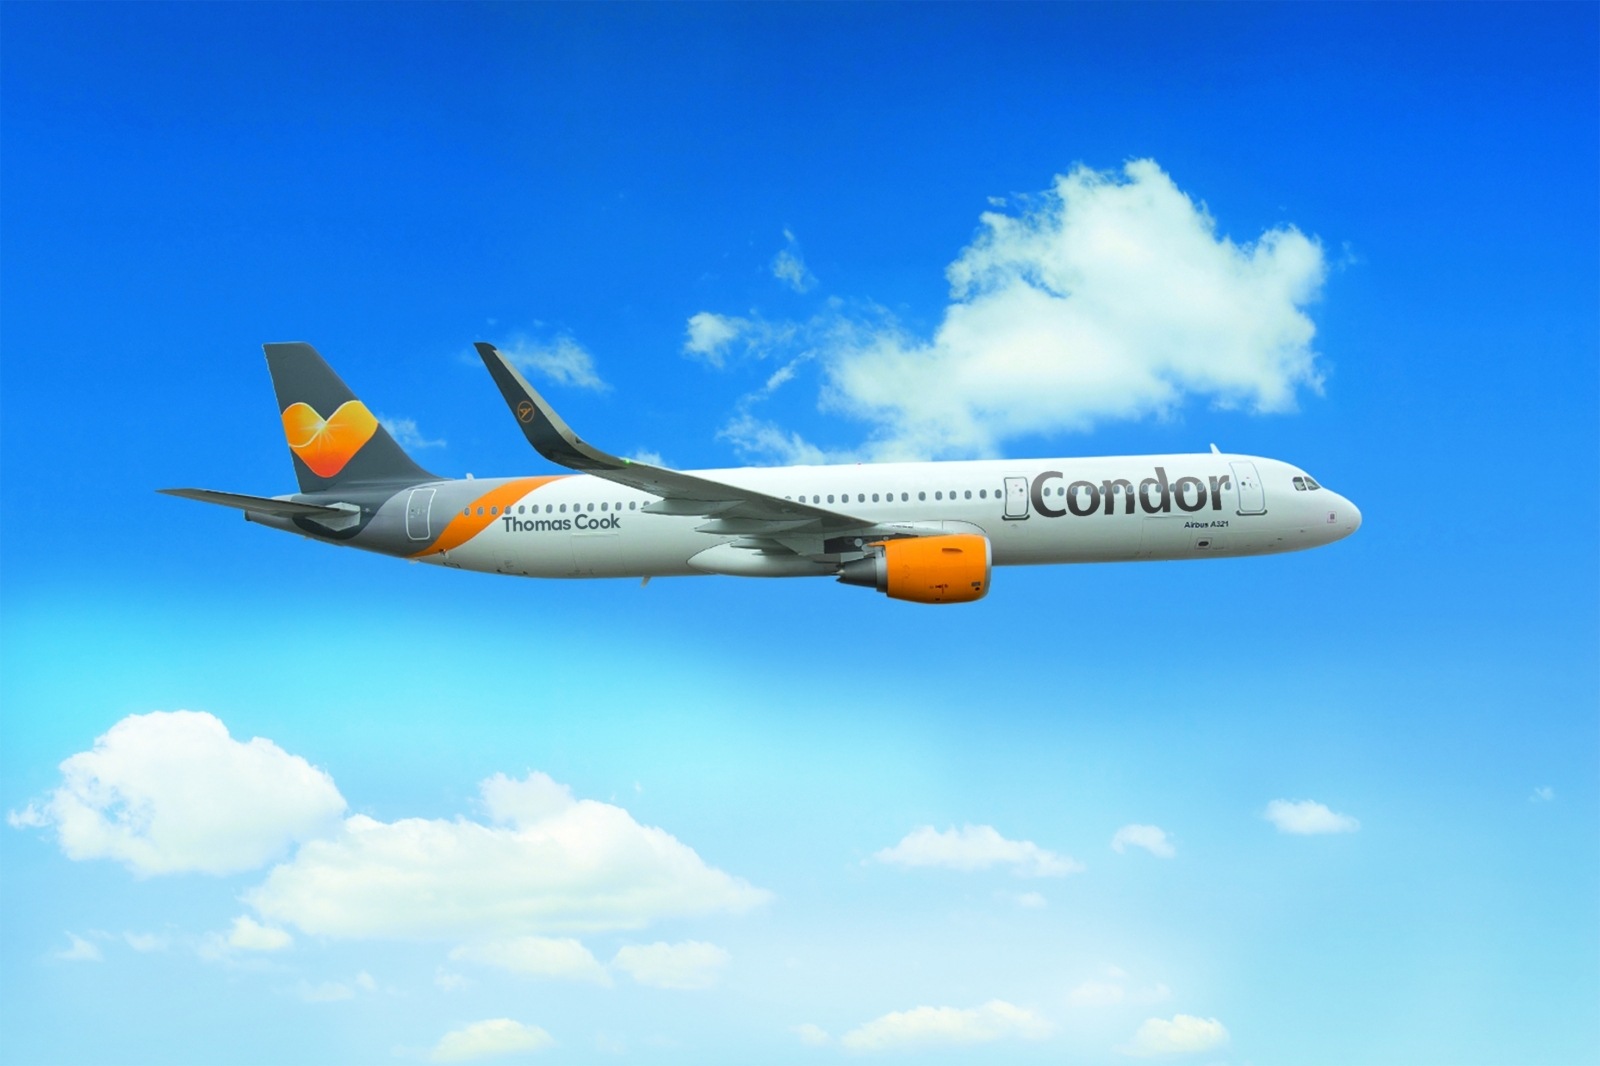 A Condor Airlines has threaten pilots with two years in jail if they secretly film stewardesses having sex on planes